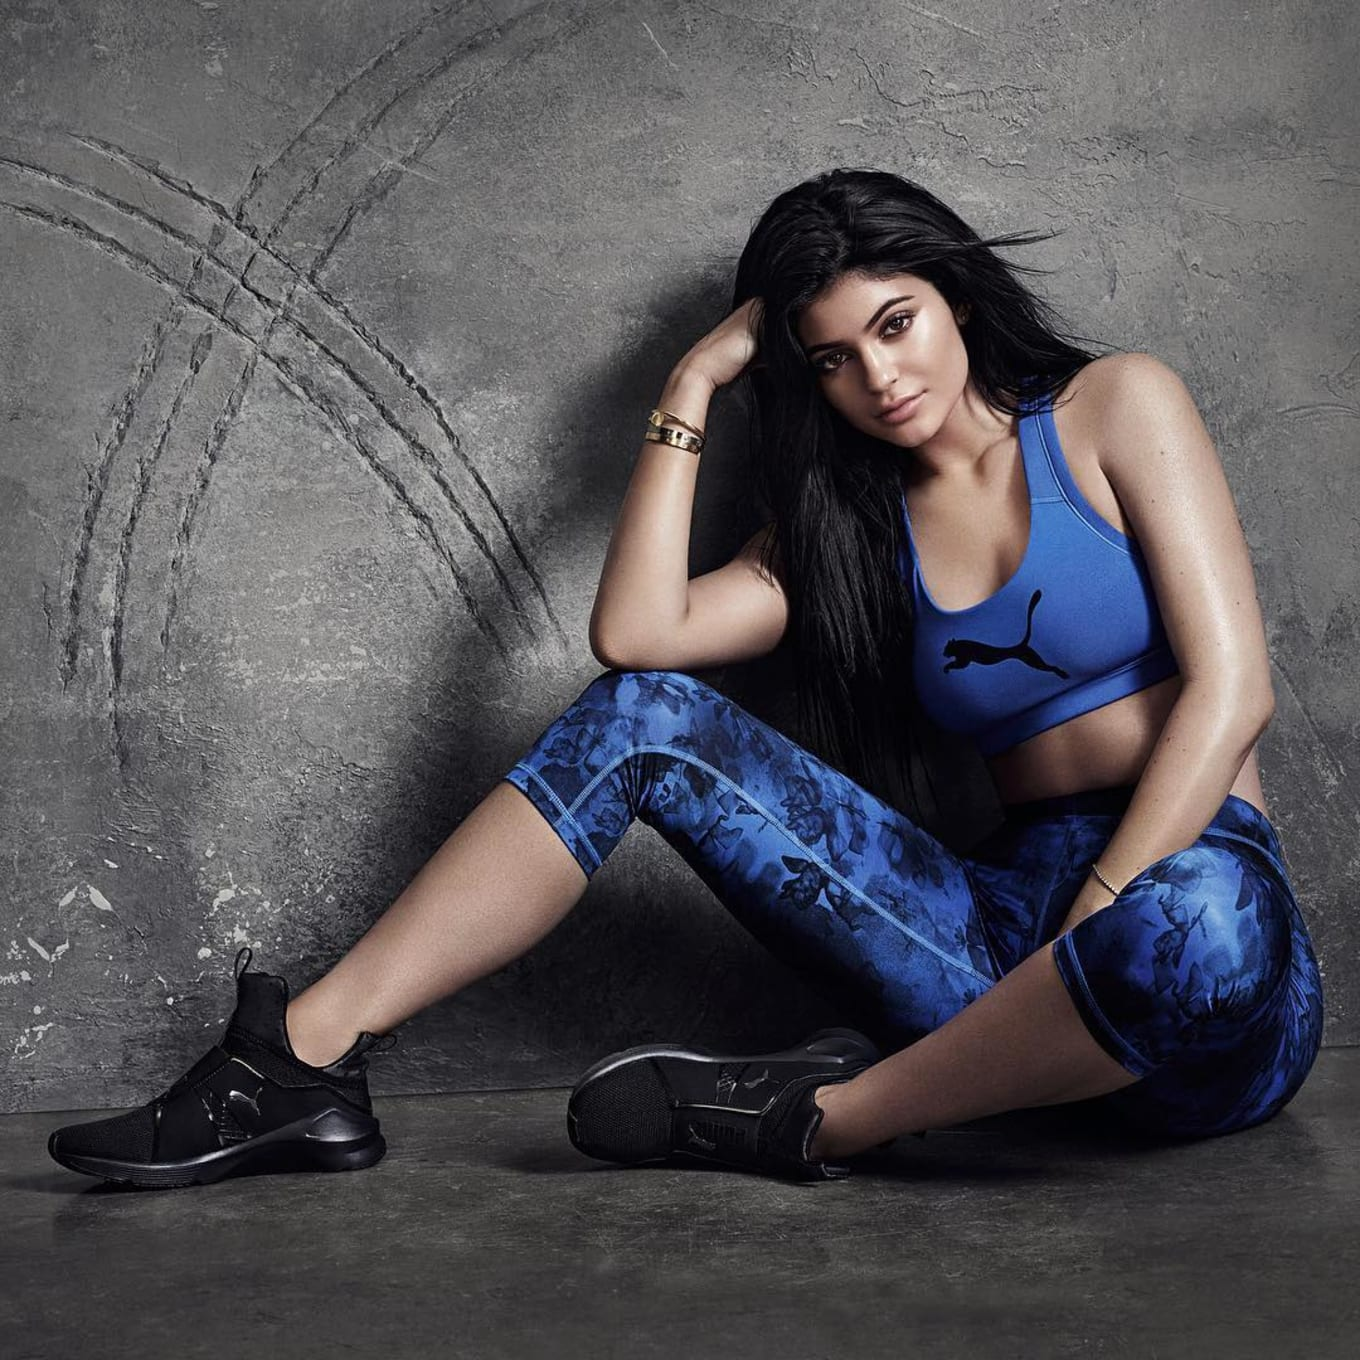 Kylie Jenner for Puma Fierce  8510566c6